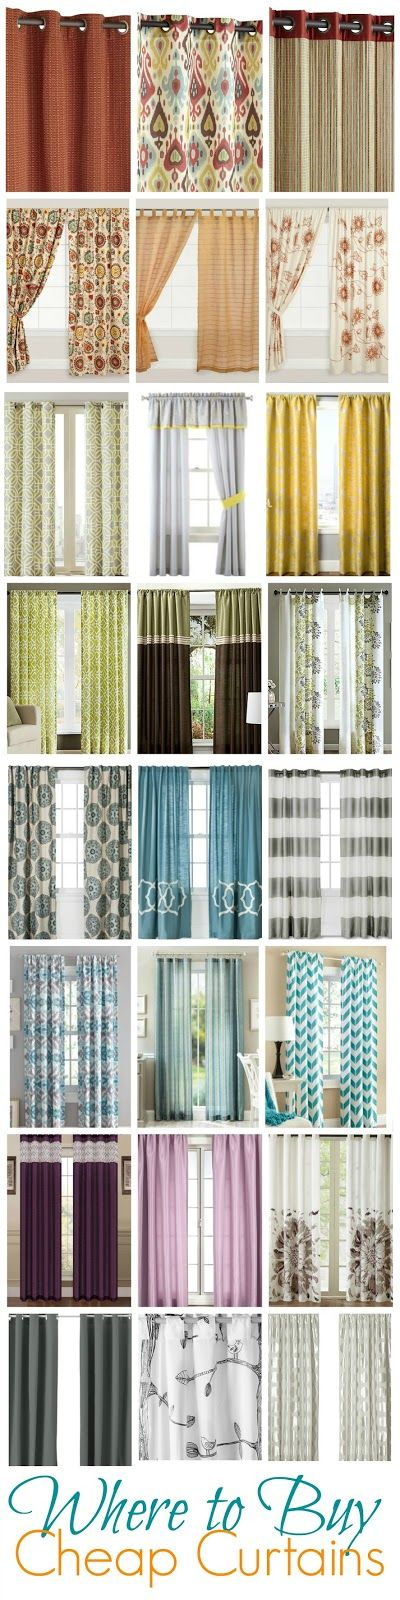 Where To Buy Kitchen Curtains Cool Inspiration Design